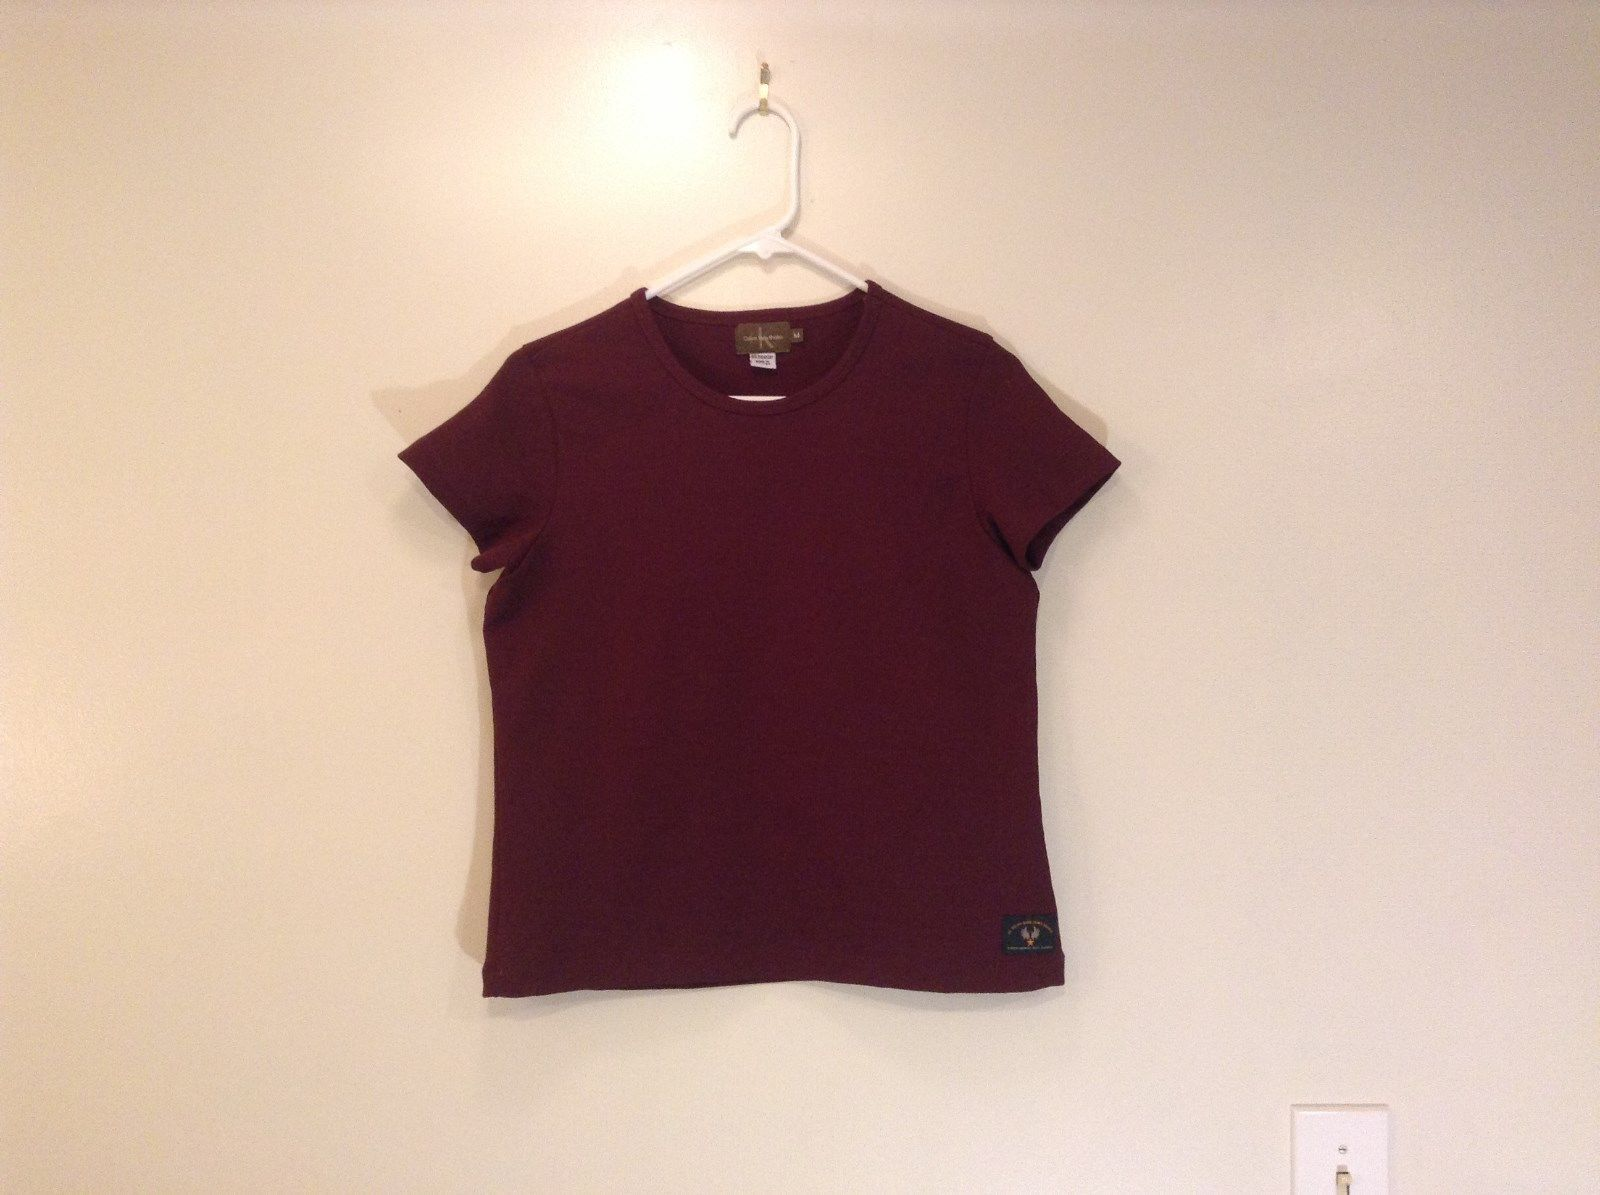 Calvin Klein Short Sleeve Maroon Scoop Neck Top 100 Percent Polyester Size M